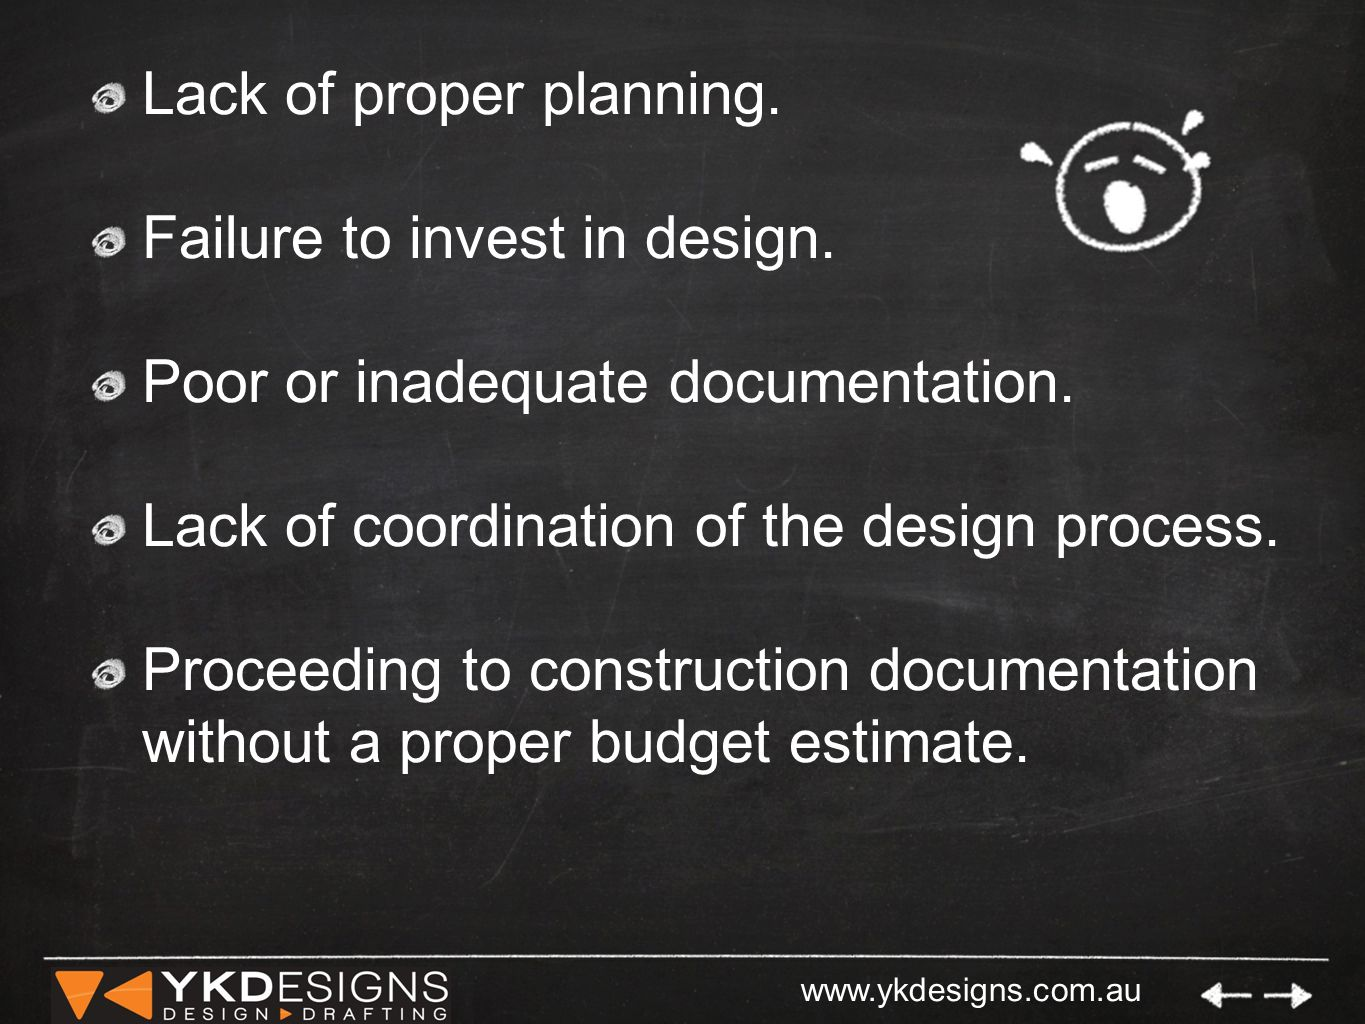 www.ykdesigns.com.au Lack of proper planning. Failure to invest in design. Poor or inadequate documentation. Lack of coordination of the design proces